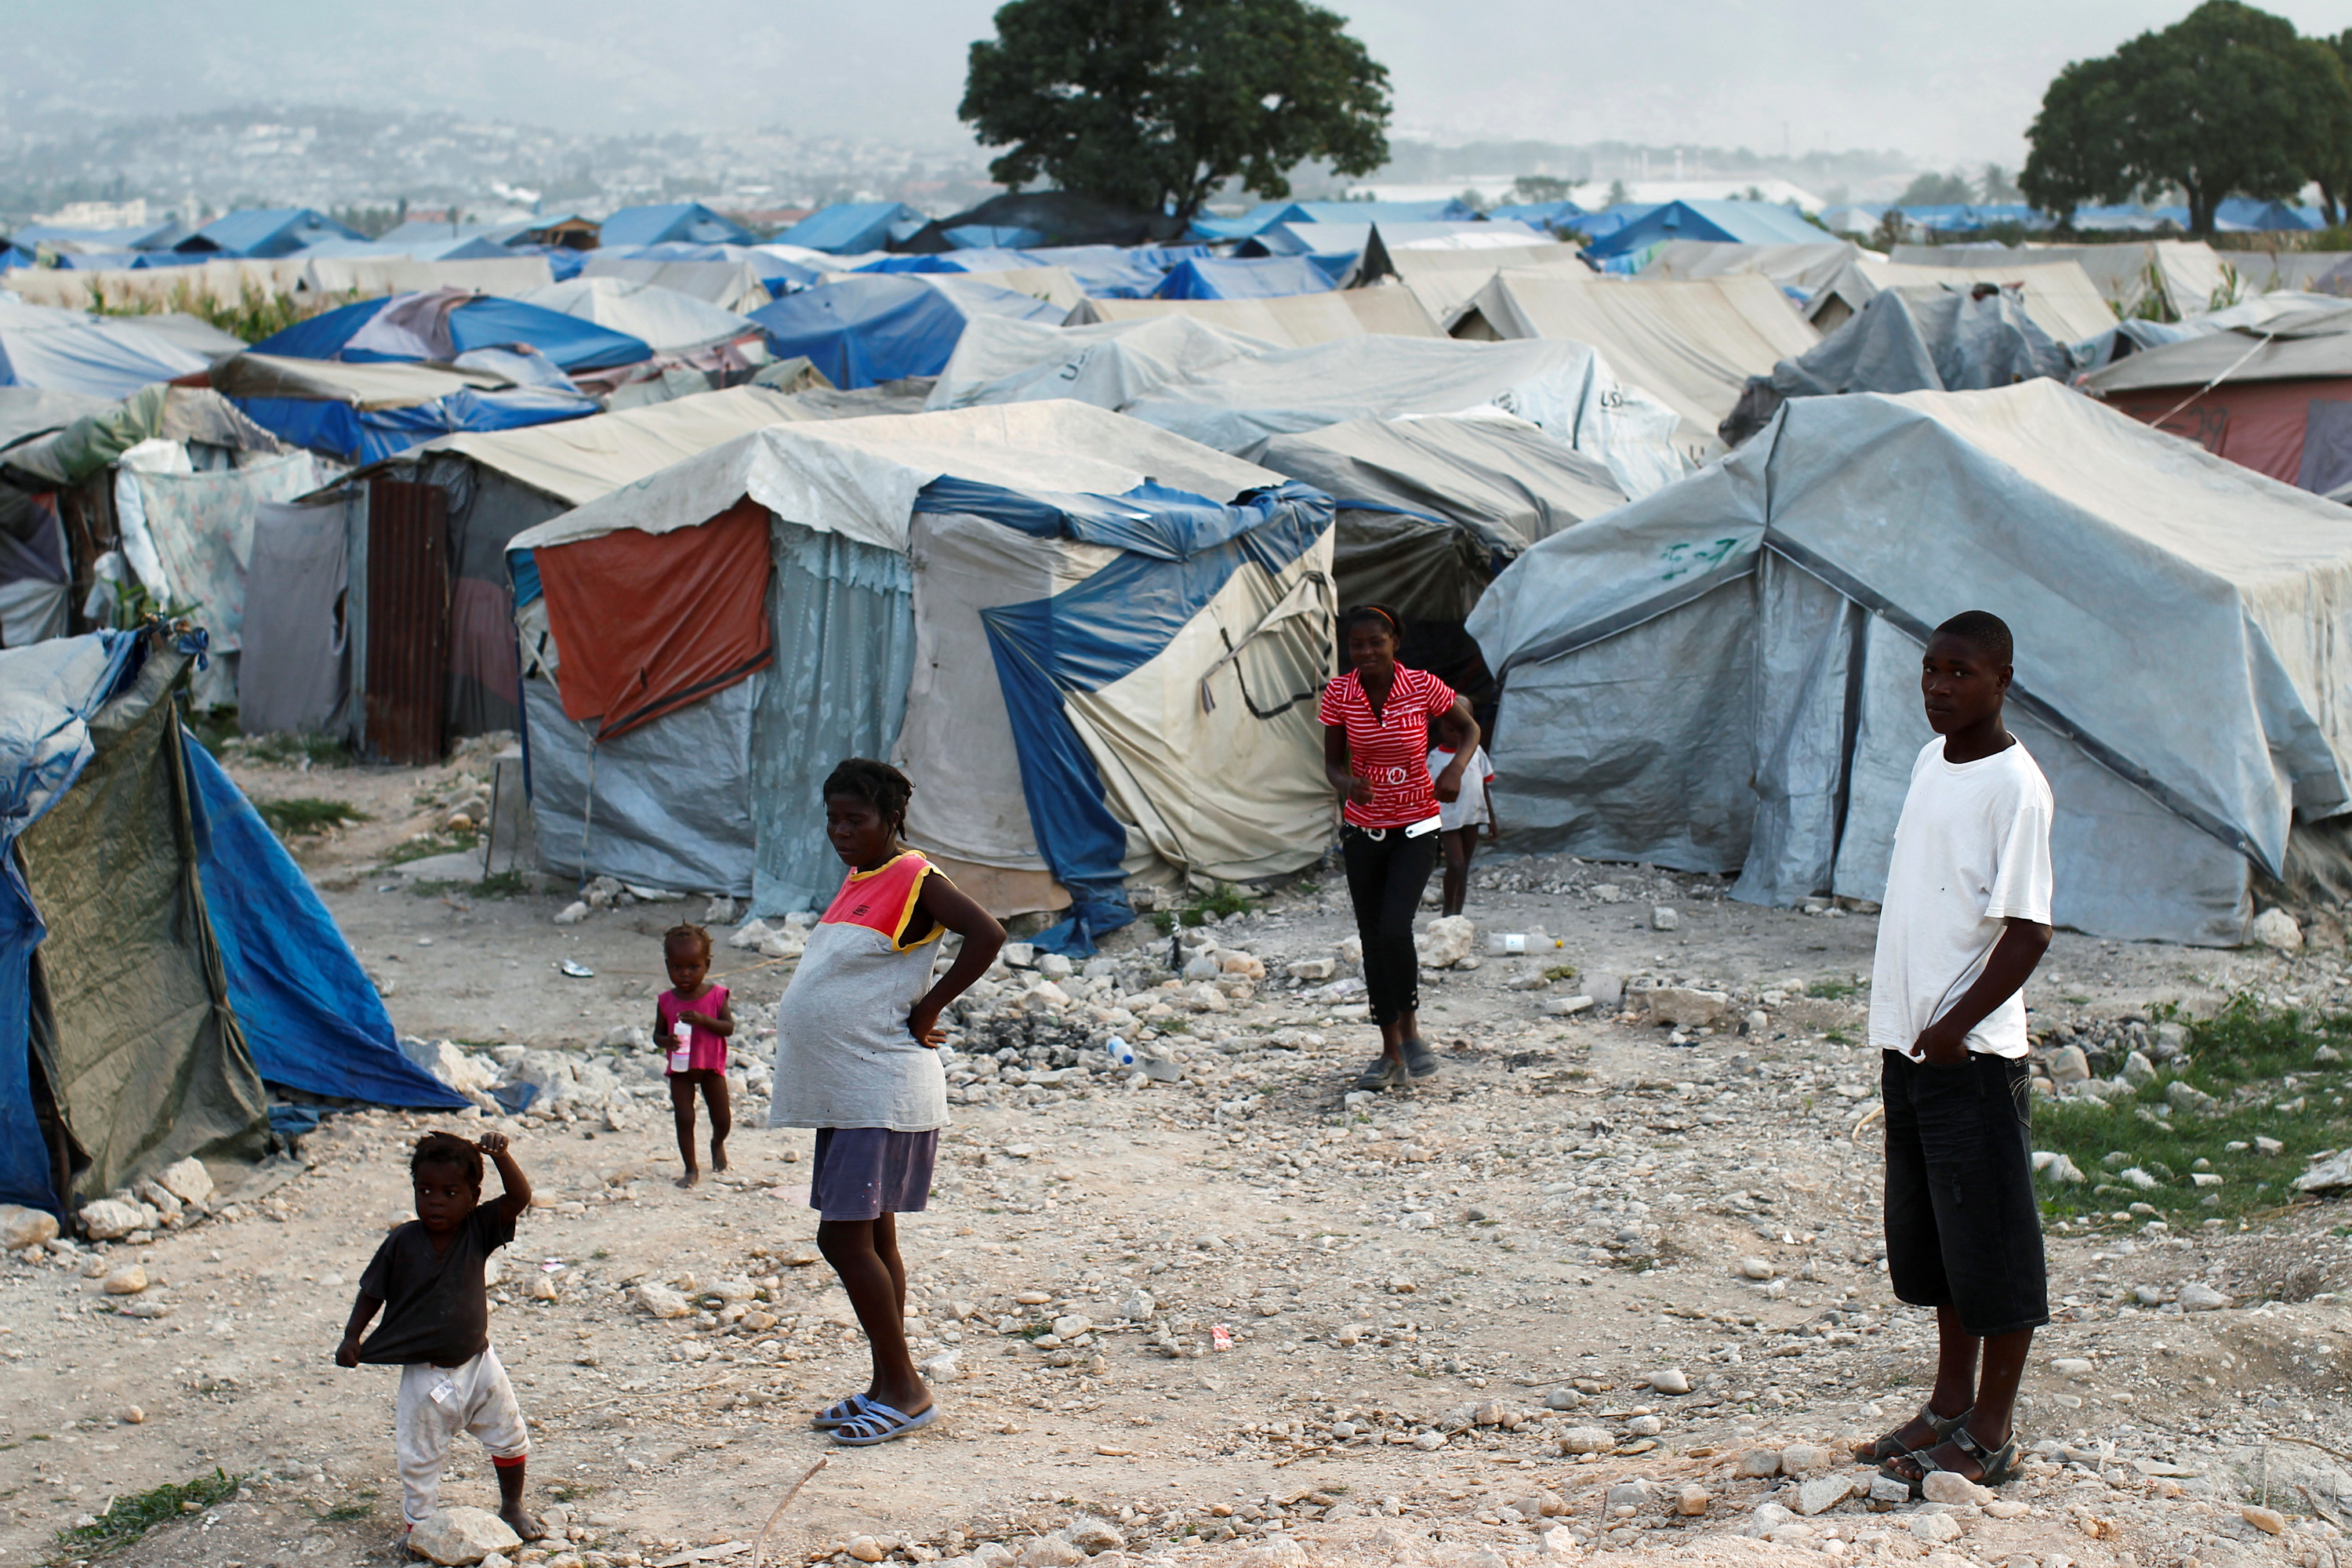 Haitians made homeless in the 2010 earthquake stand outside their tents on the outskirts of Port-au-Prince January 13, 2011. REUTERS/Jorge Silva/File Photo